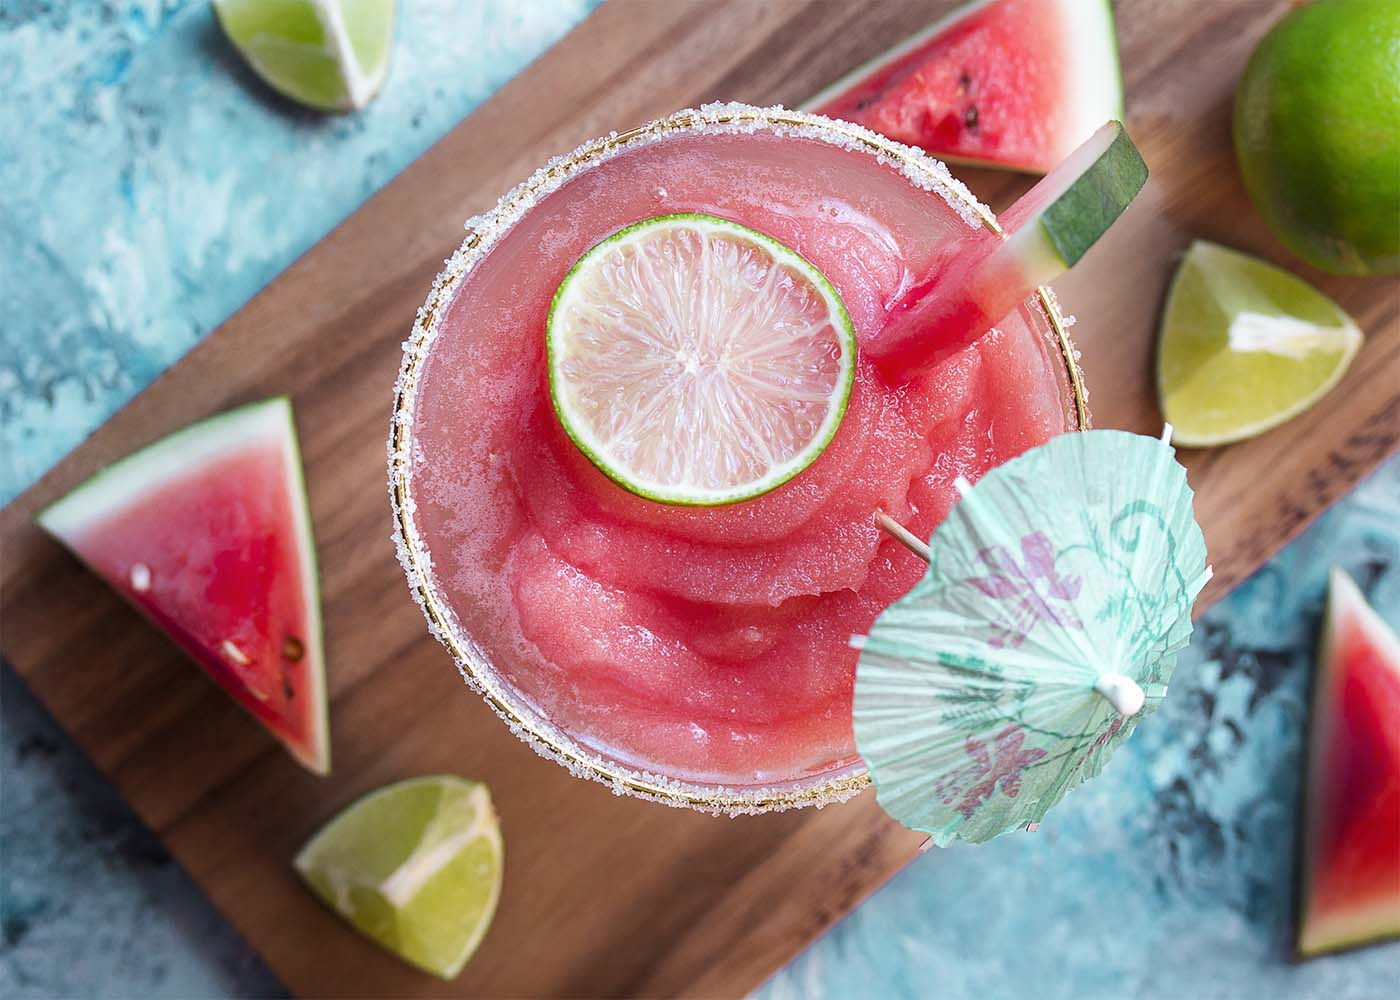 Top view of a sugar rimmed margarita glass filled with frozen watermelon cocktail.